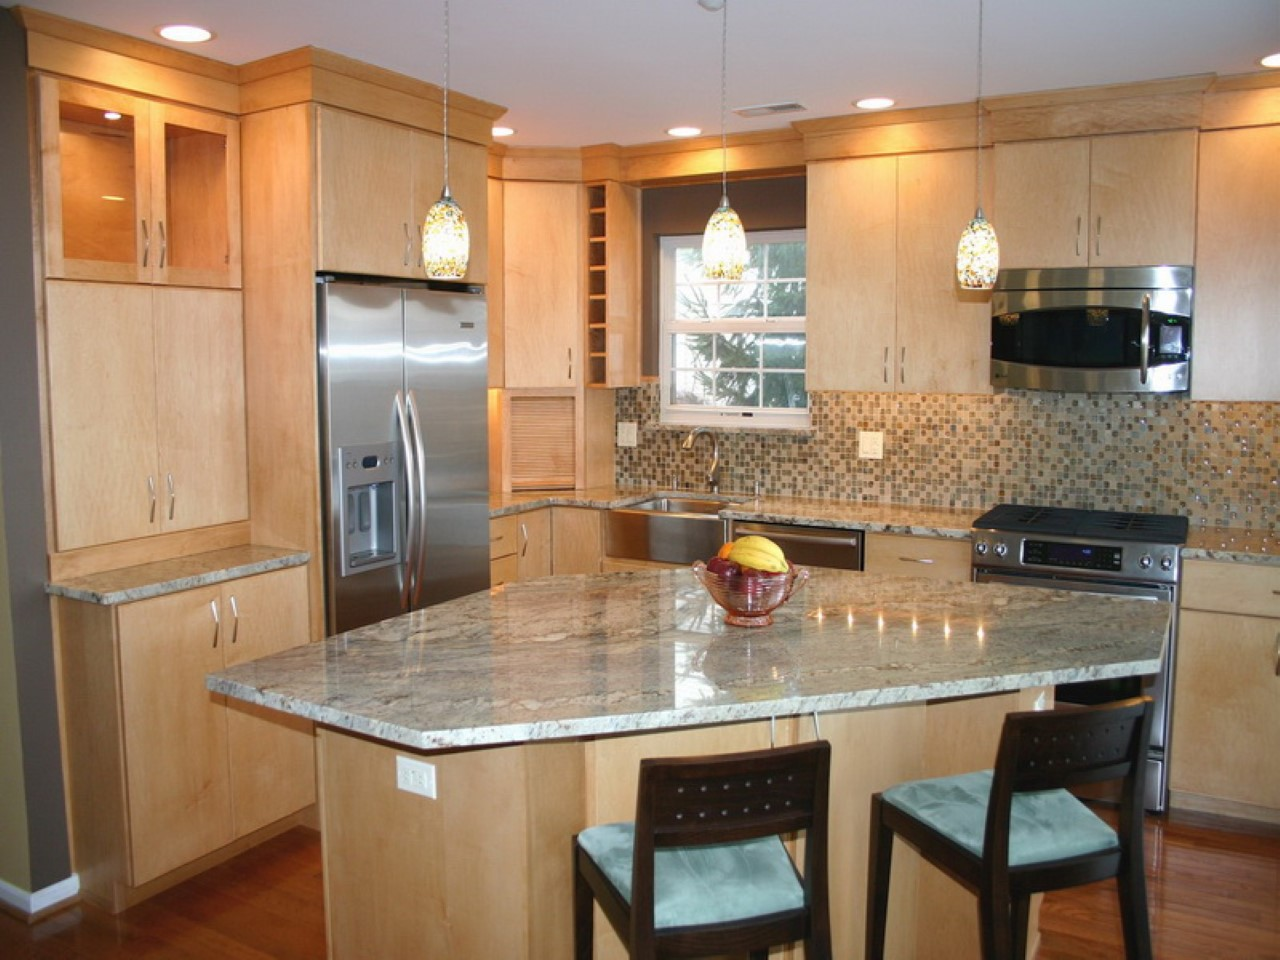 Best small kitchen design with island for perfect for Small kitchen layout with island